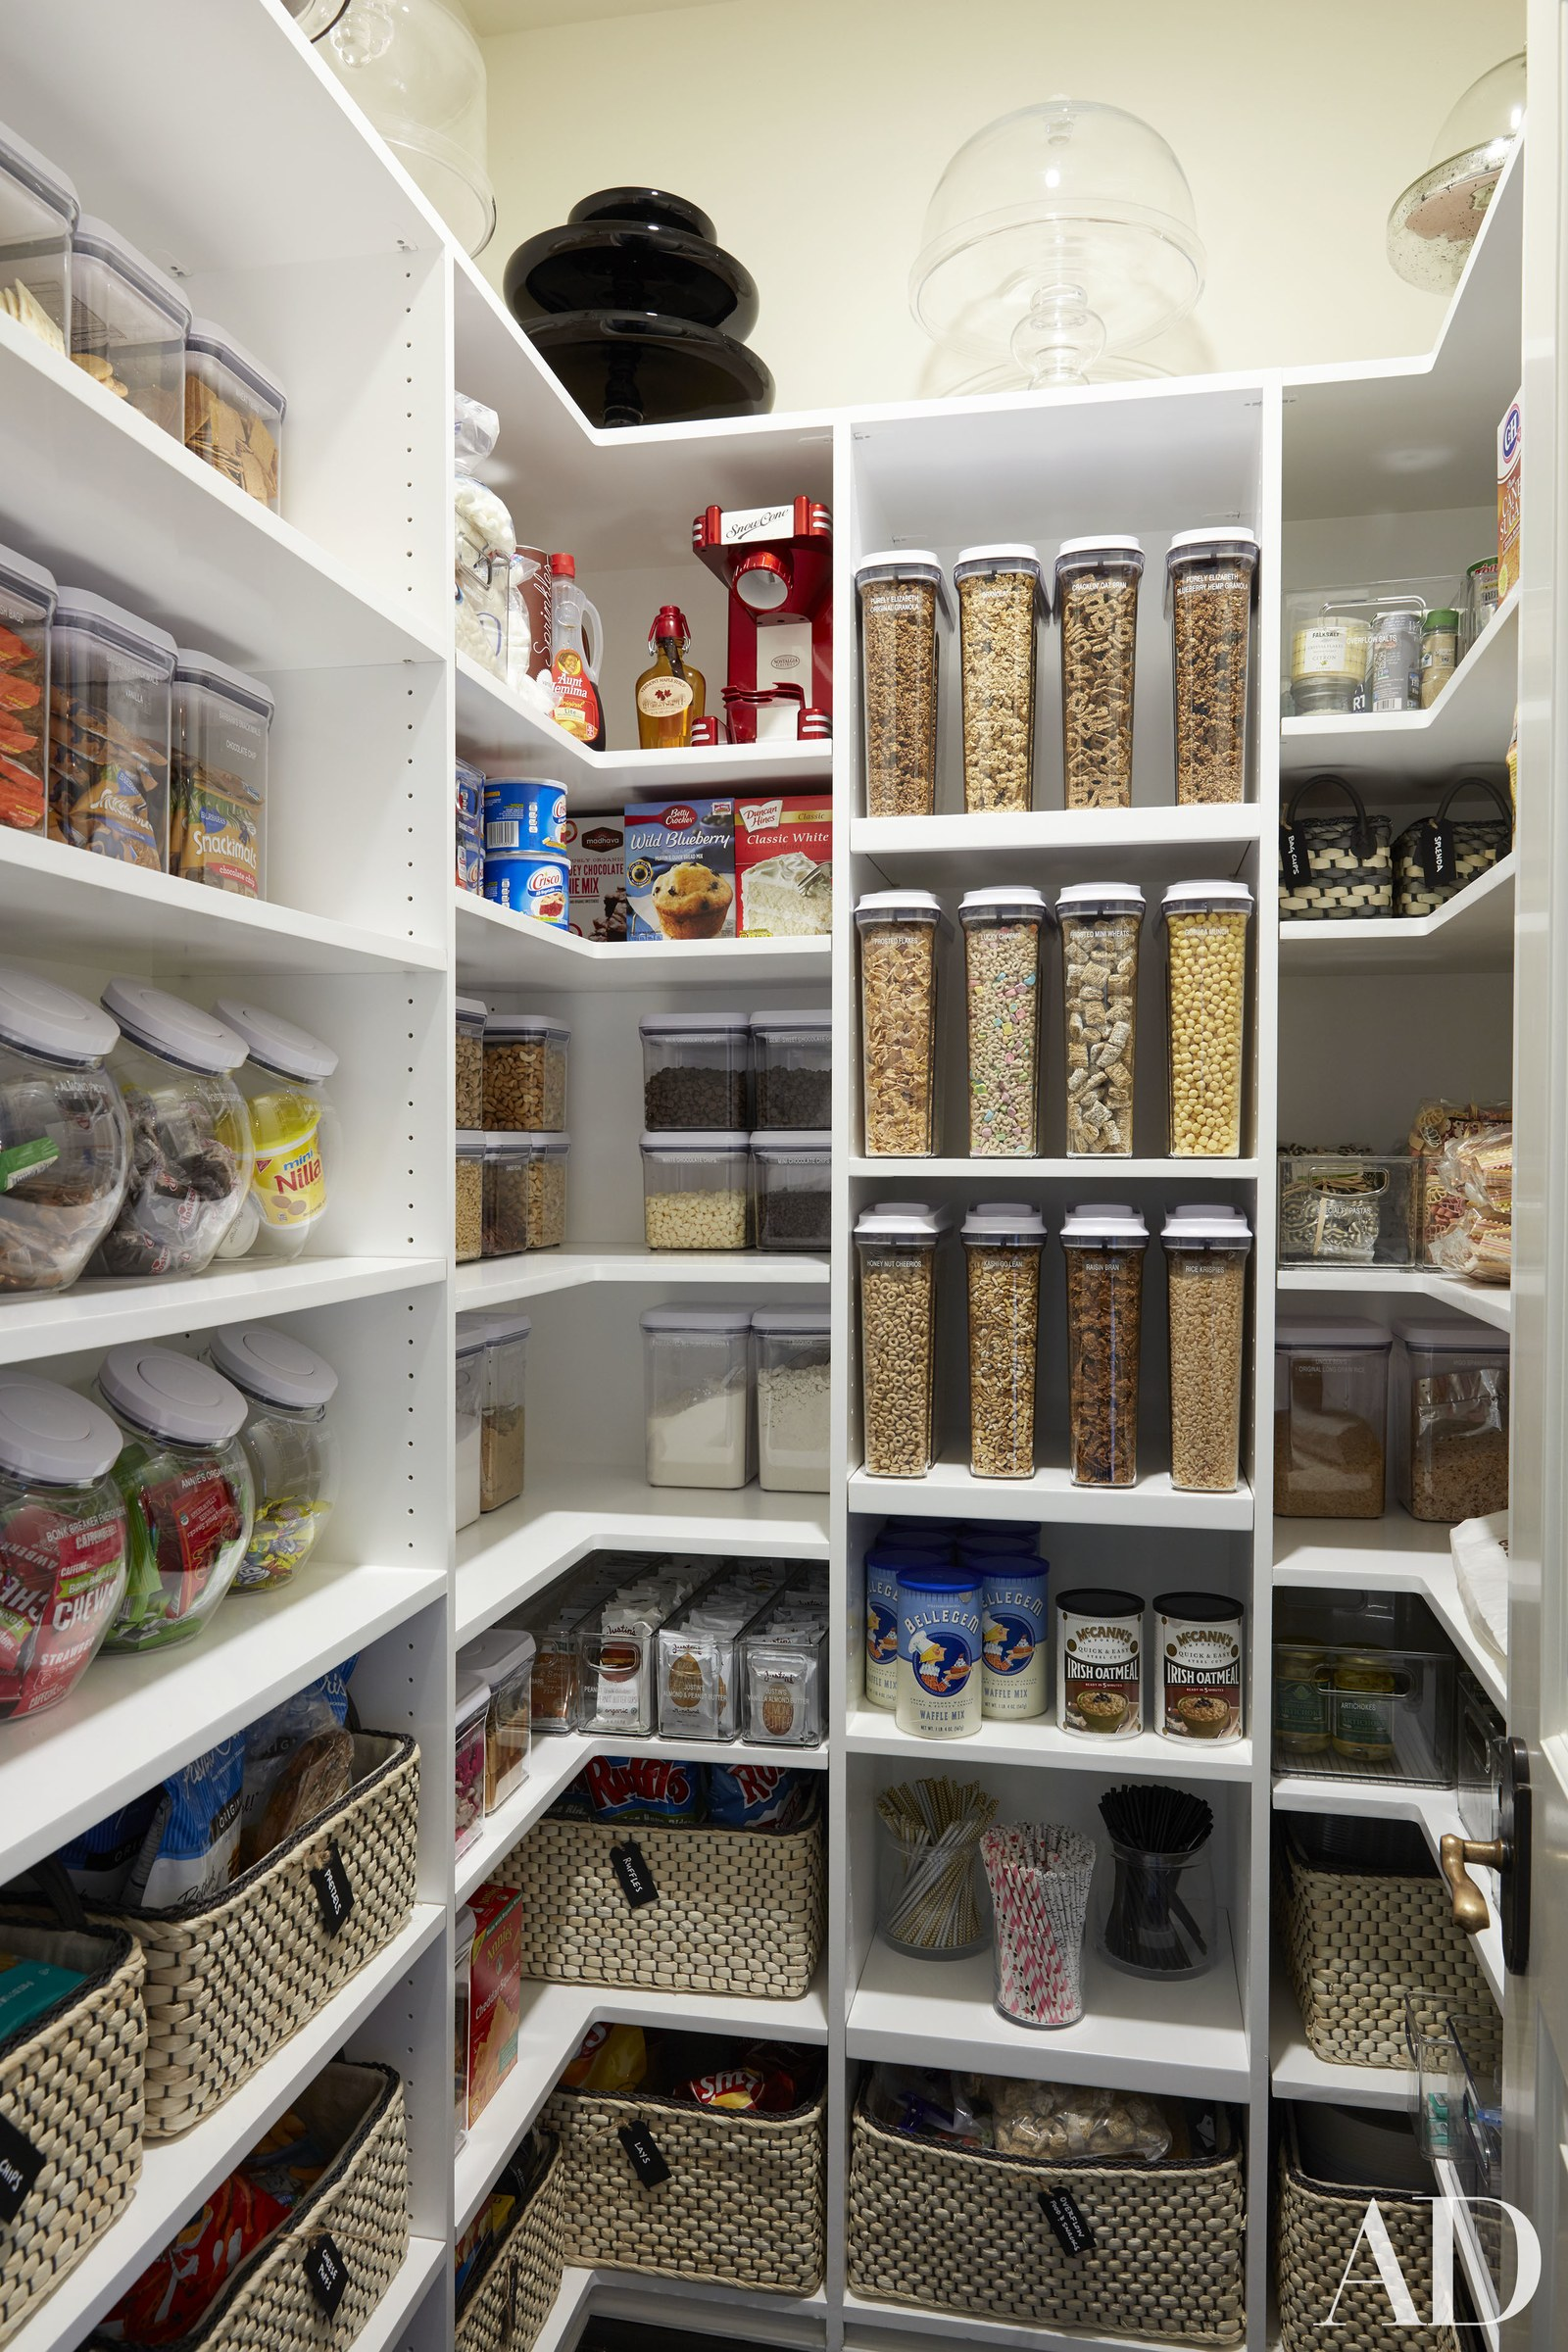 Baskets and clear containers in this pretty pantry Image via  AD  photo by  Roger Davies